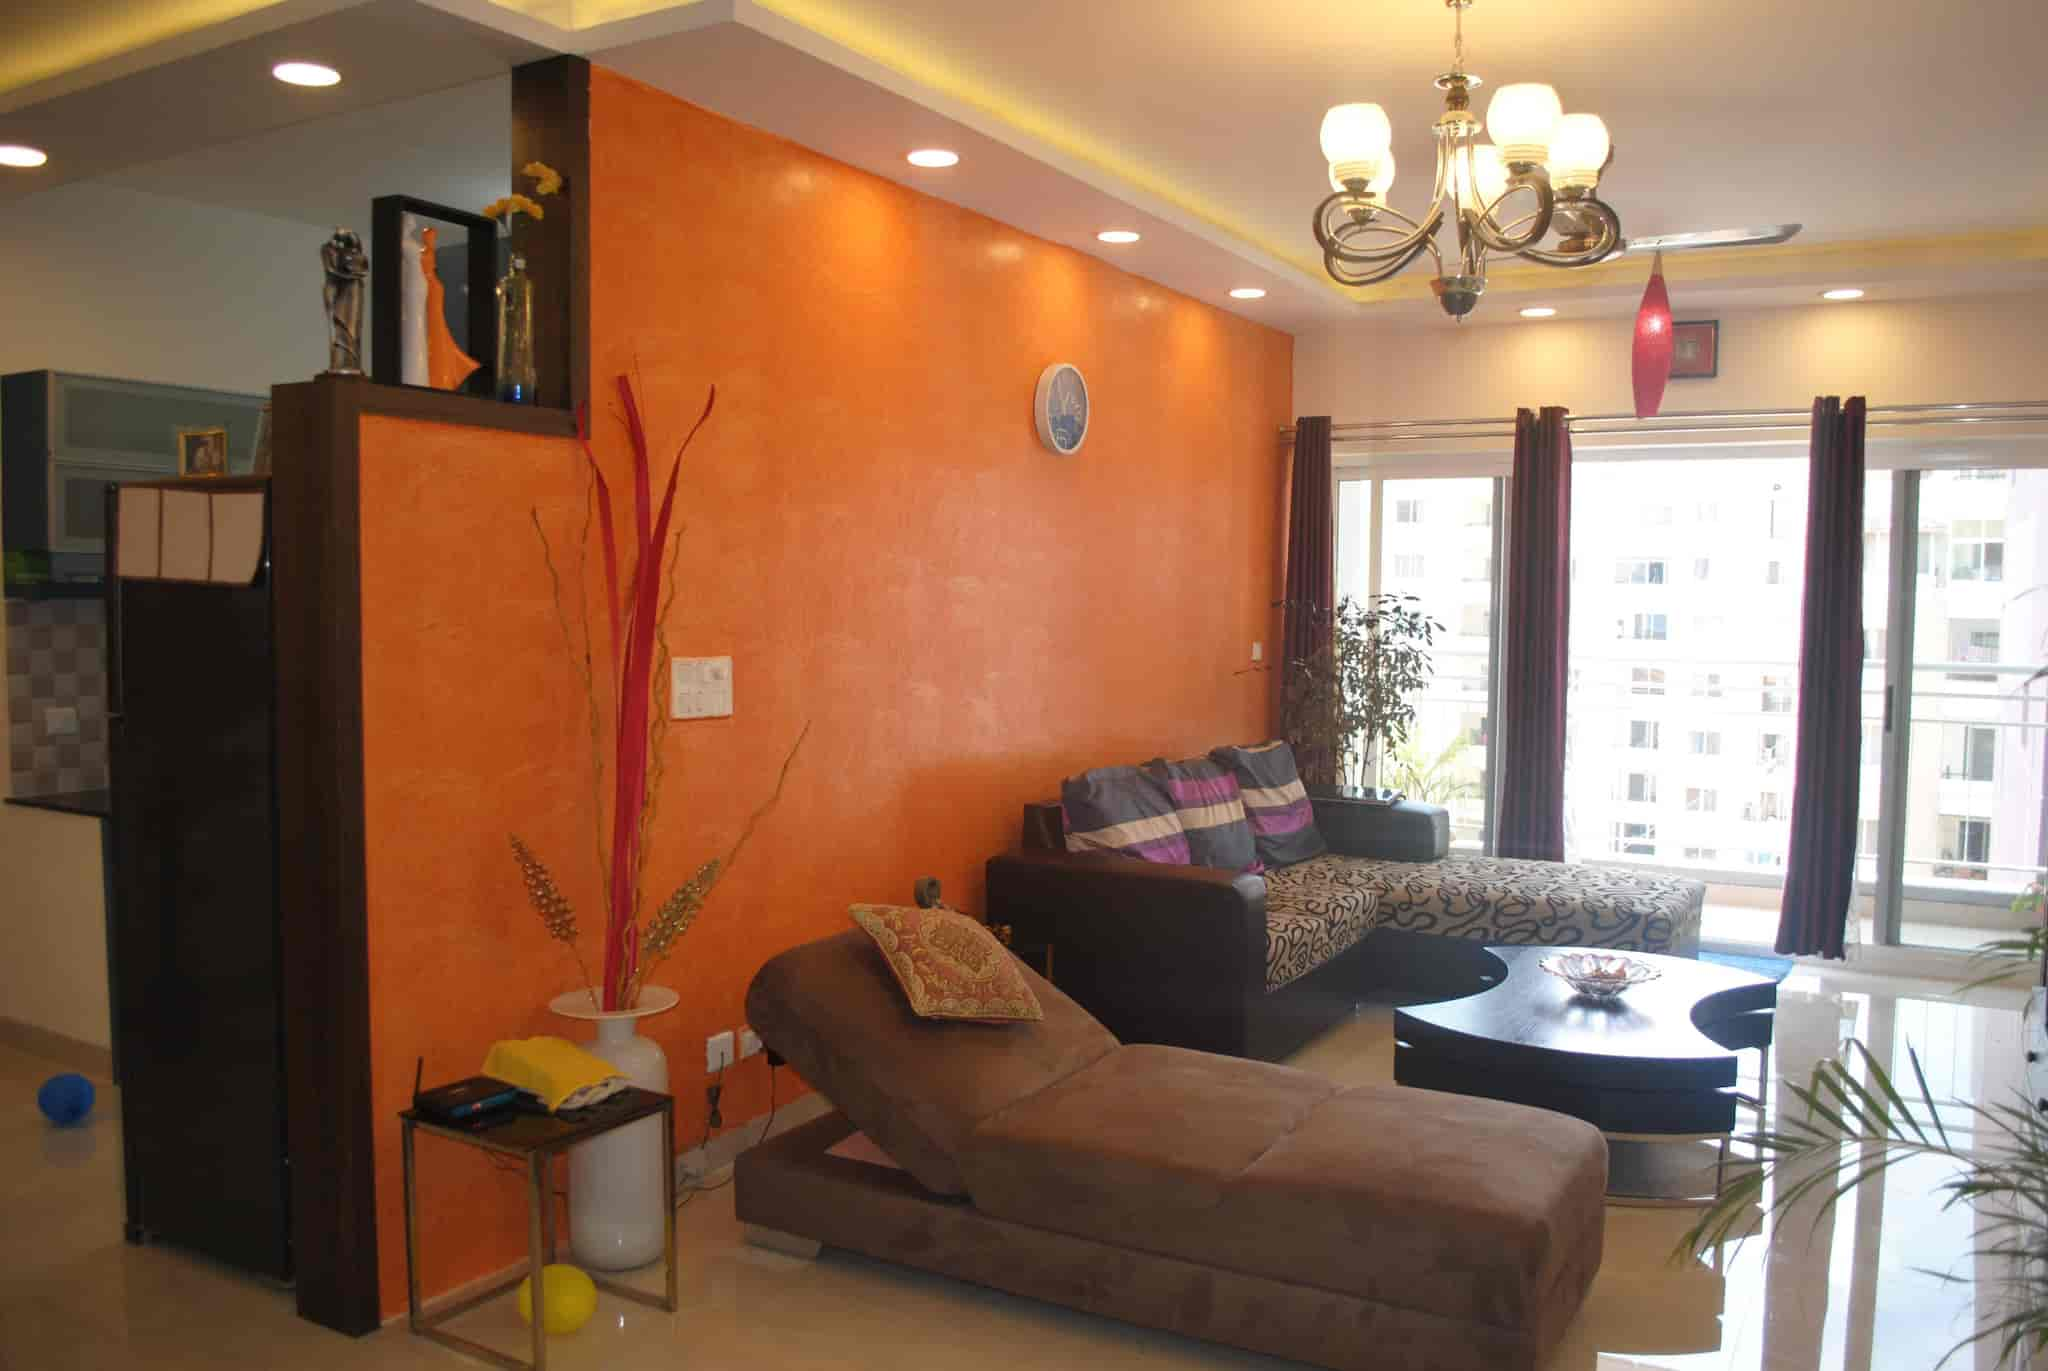 Factree Photos Sarjapur Road Bangalore Pictures Images Gallery